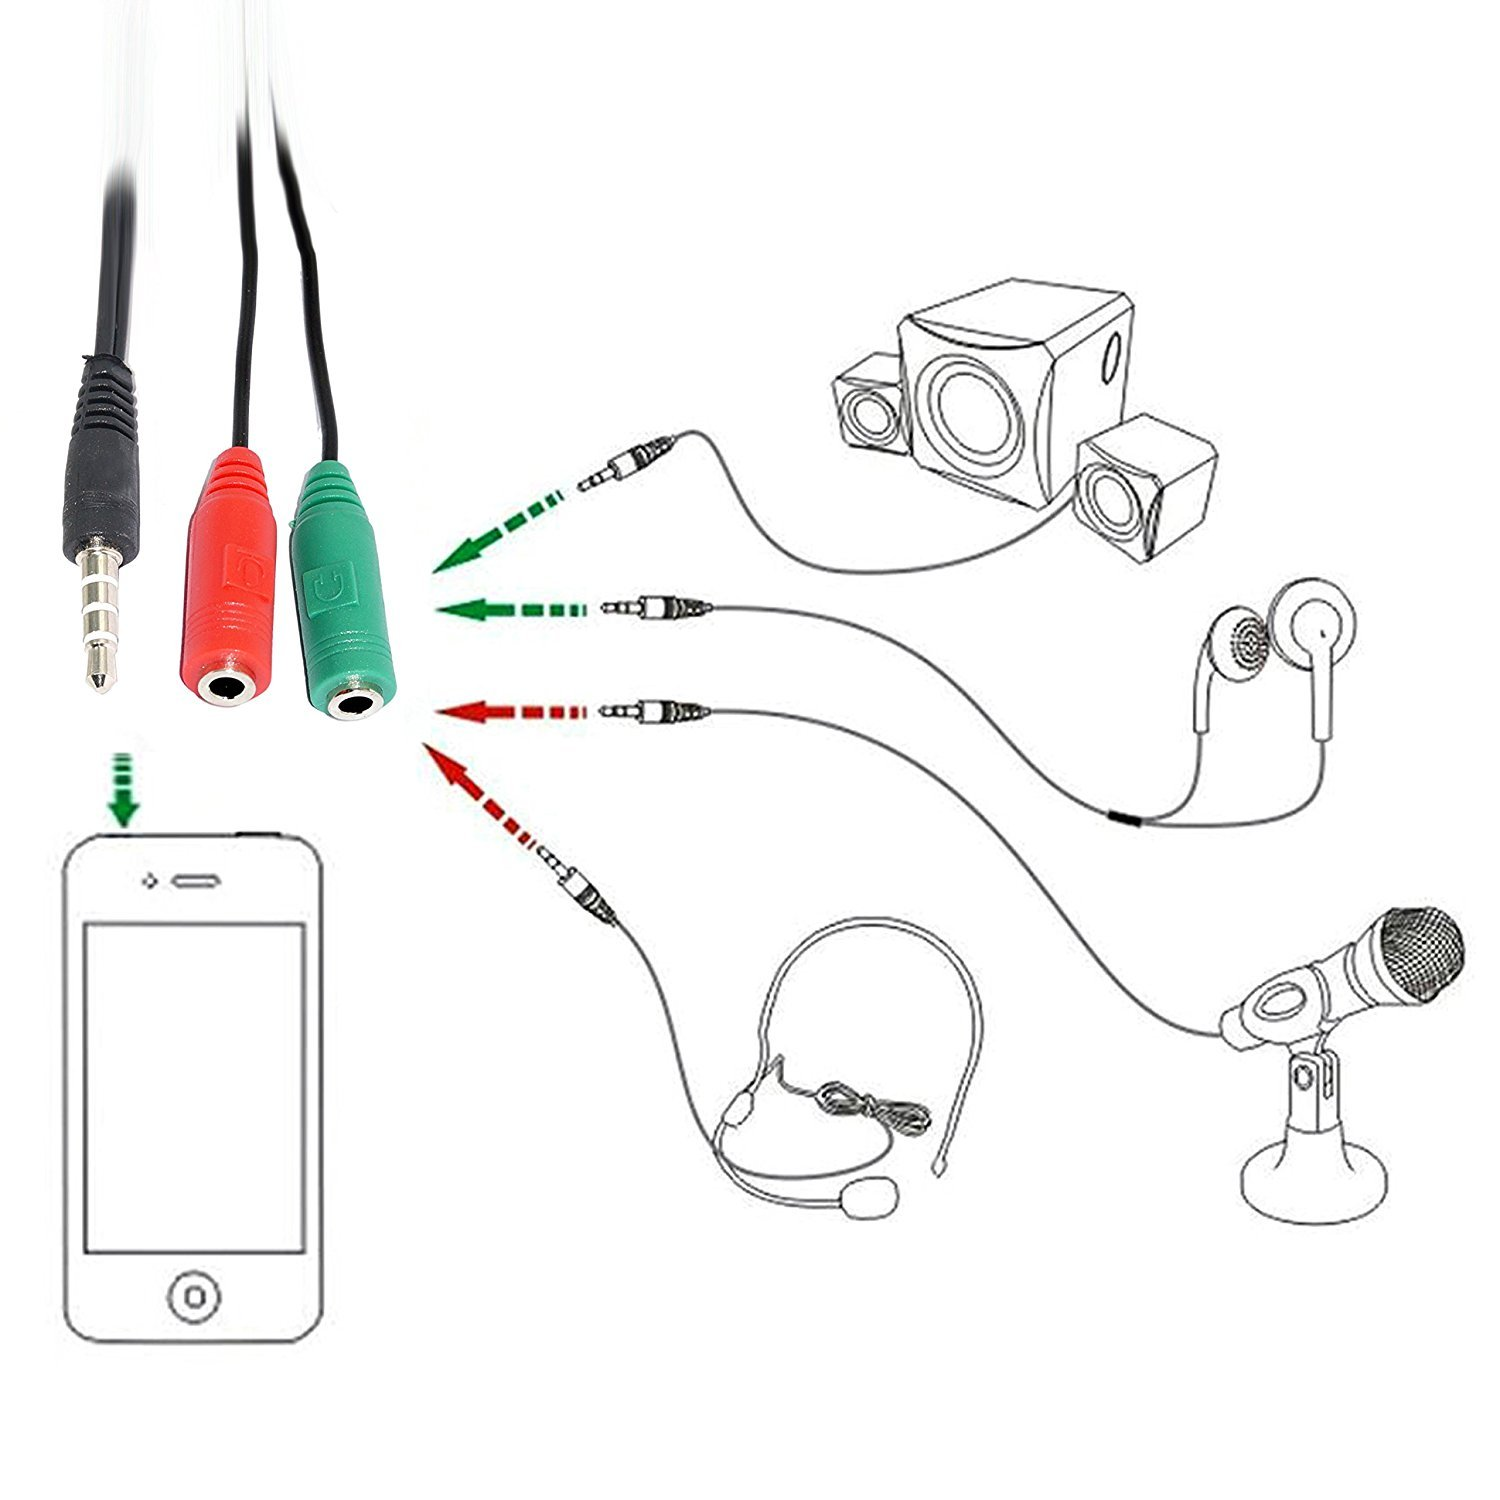 Buy Riatech 35mm Audio Jack To Headphone Microphone Splitter 3 5mm Wiring Diagram Combo Converter Adaptor Cablemulticolour Online At Low Prices In India